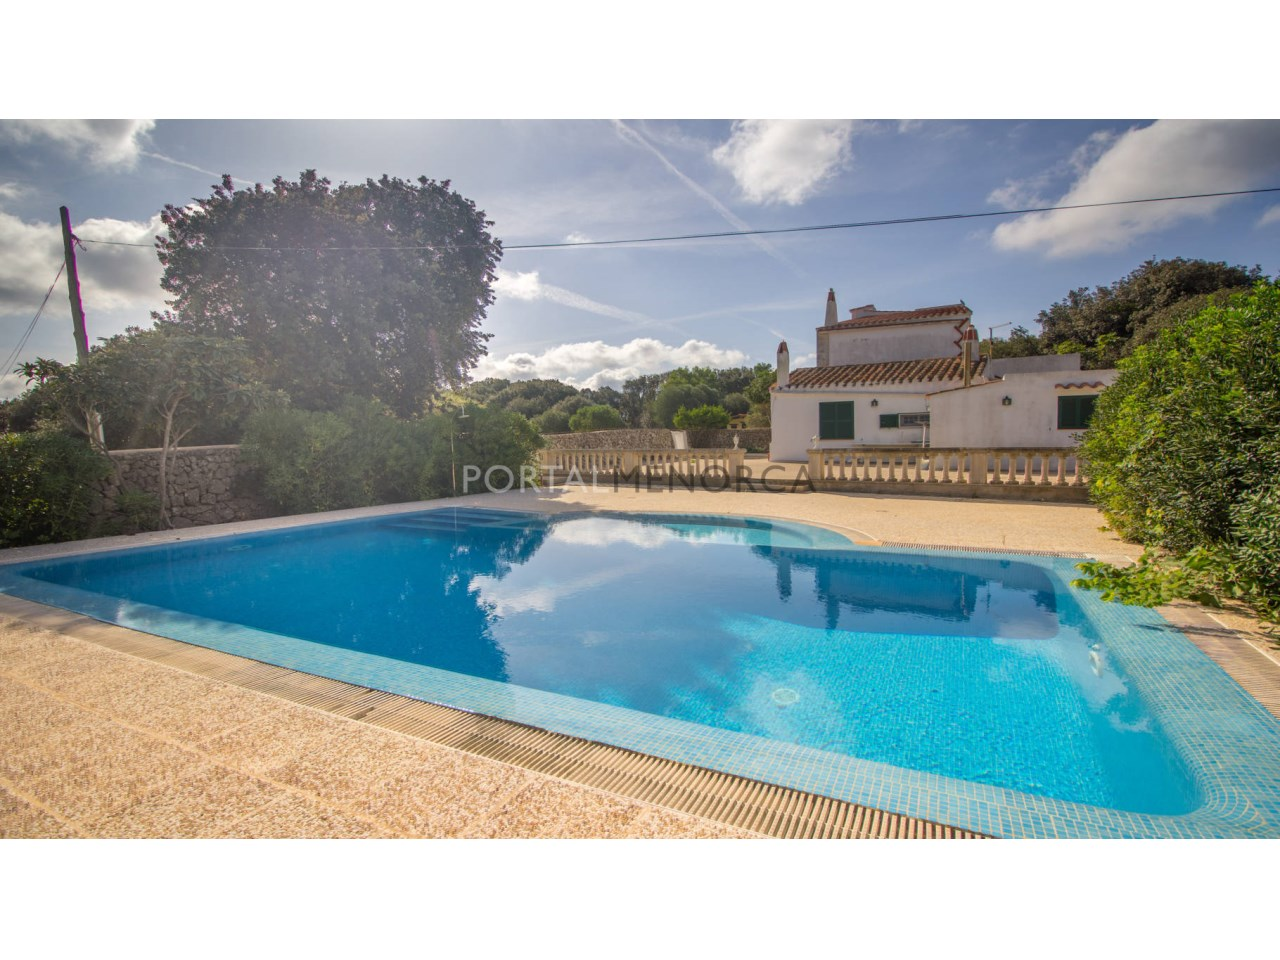 Country house for sale in Alaior with a swimming pool